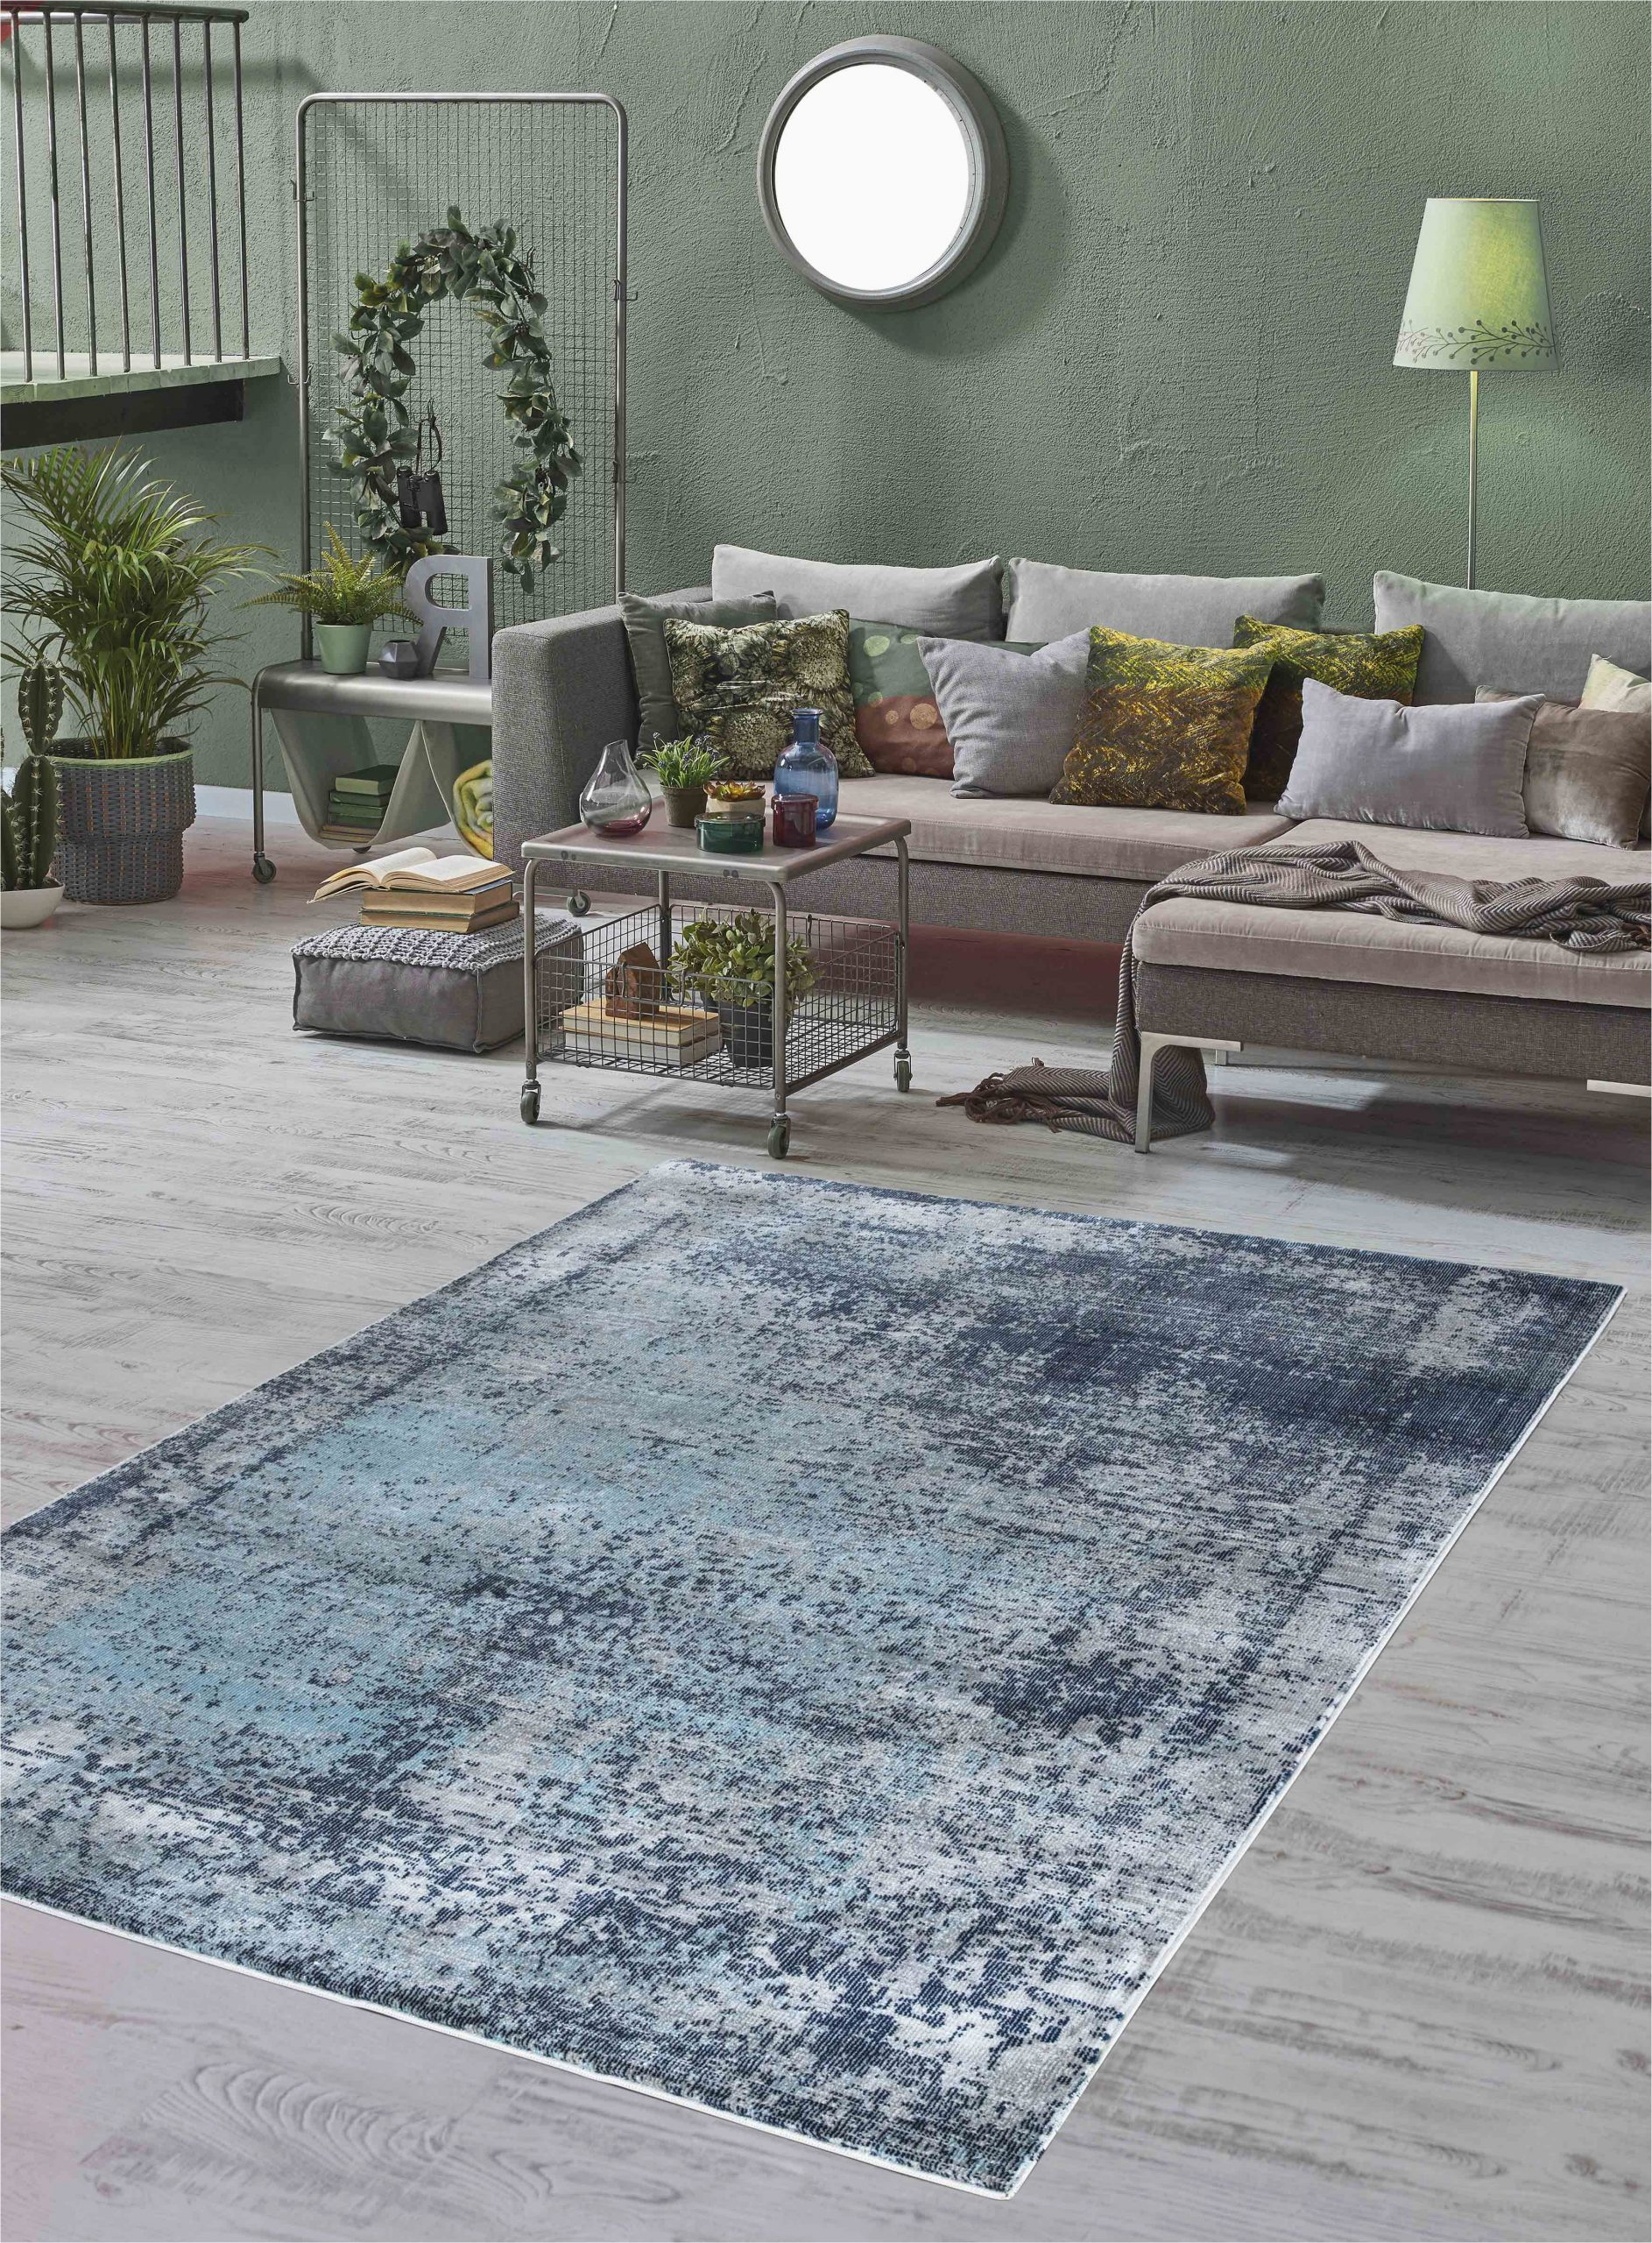 Modern Navy Blue Rug Mod Arte Mirage Collection area Rug Modern & Contemporary Style Abstract soft & Plush Navy Blue Gray